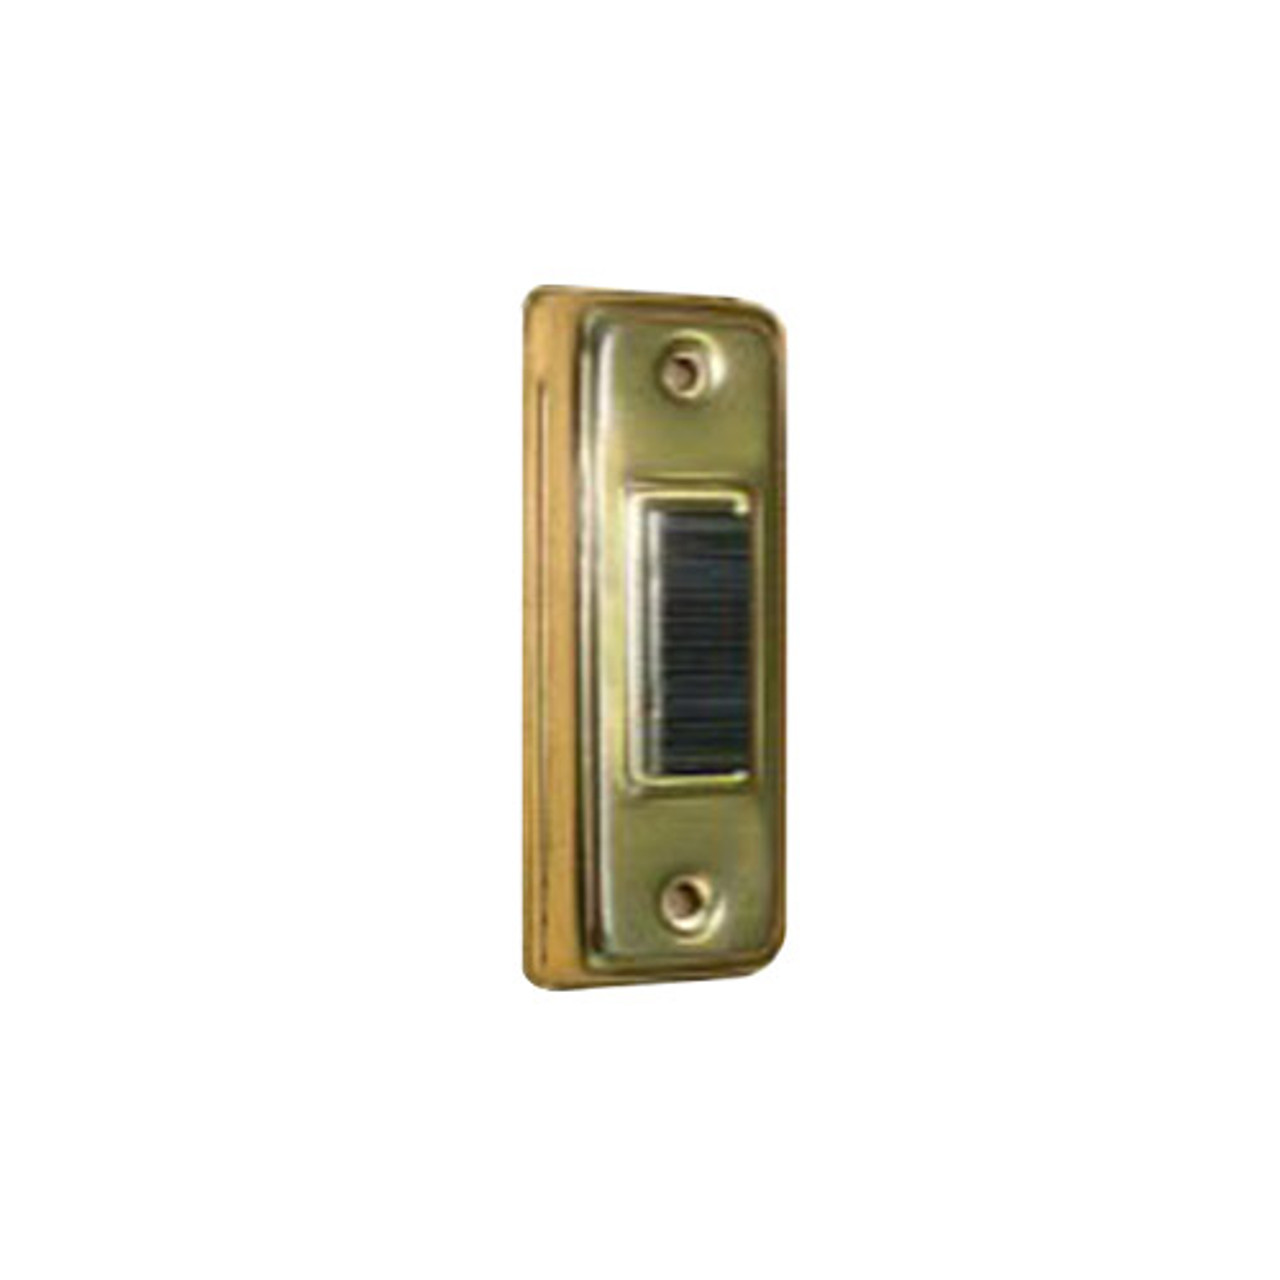 71A Trine Push Button Lighted Anodized Aluminum Housing with Black Bar